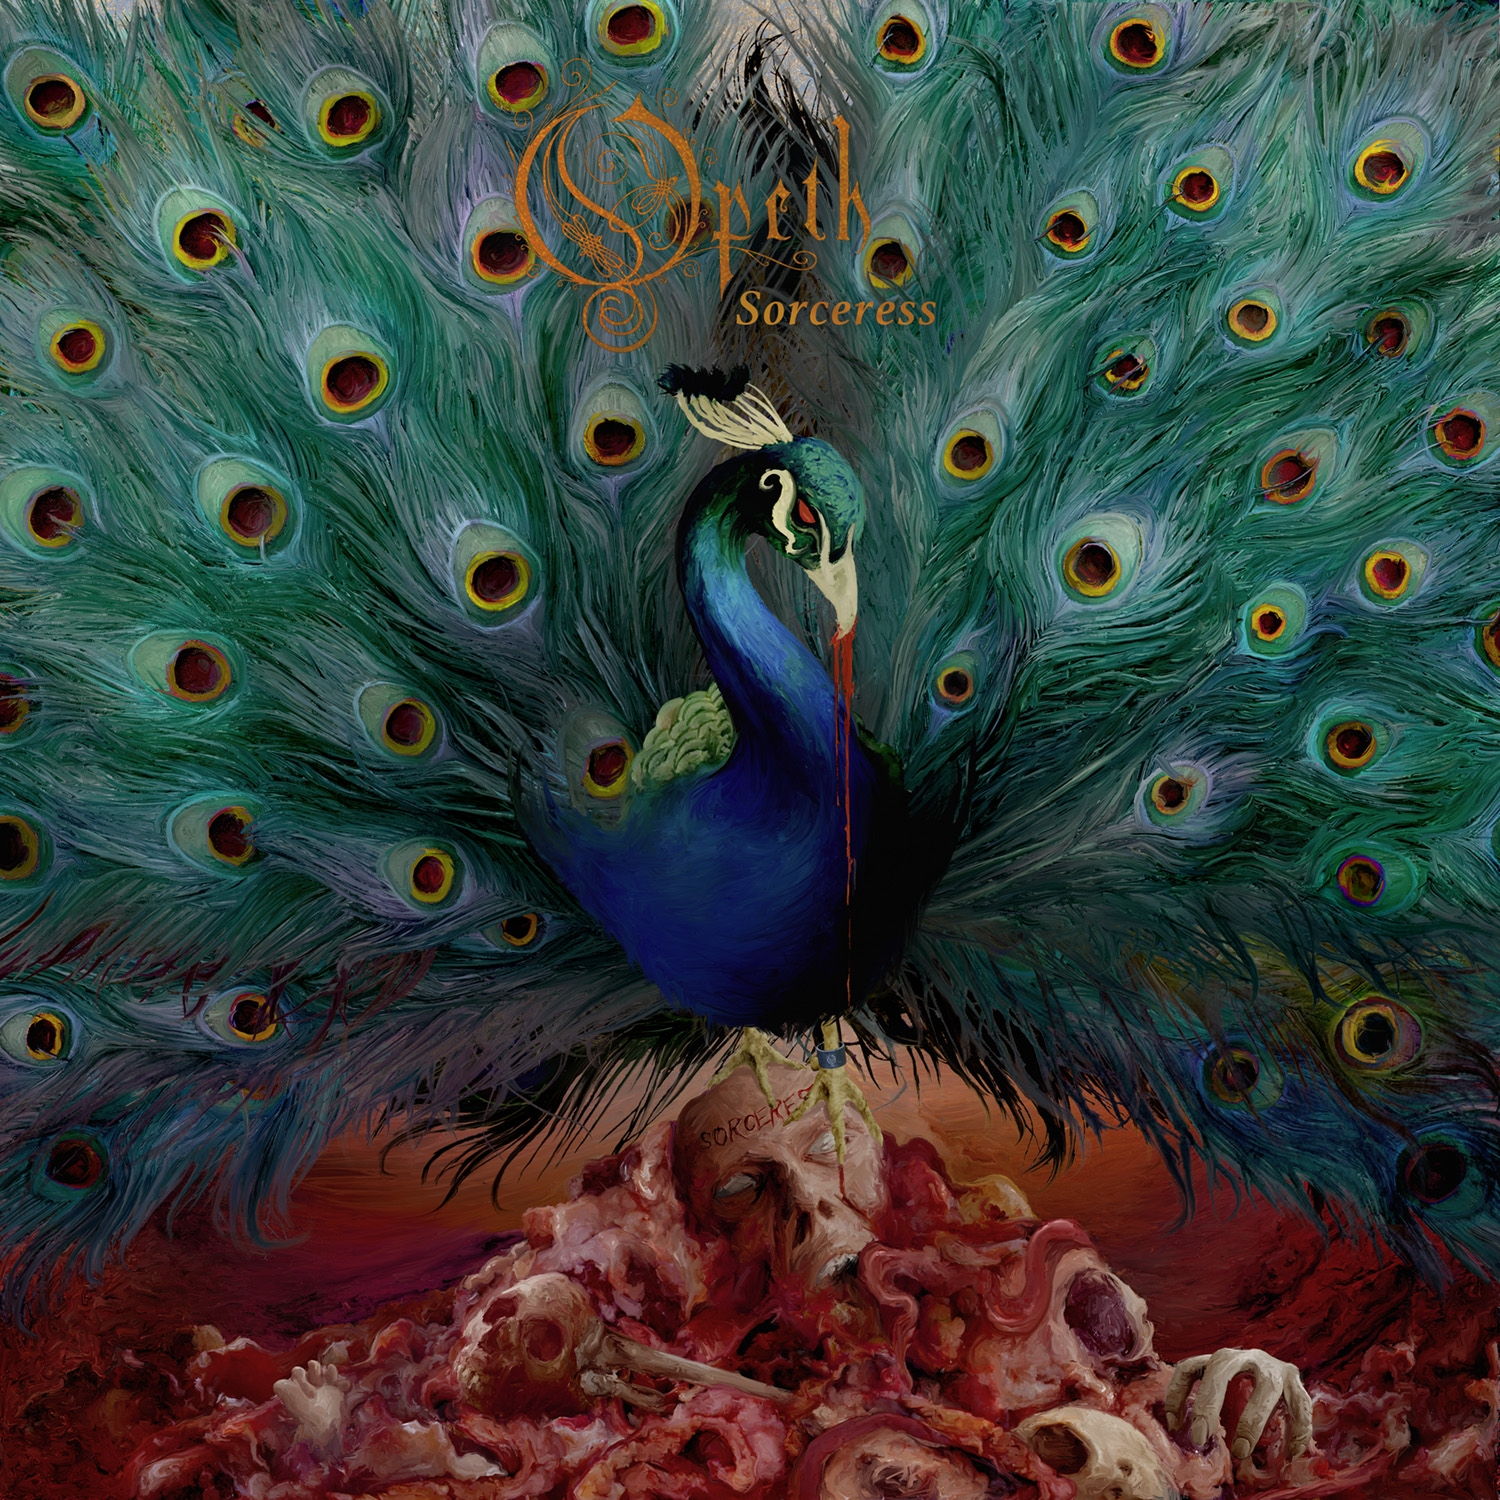 Opeth - Sorceress - Artwork